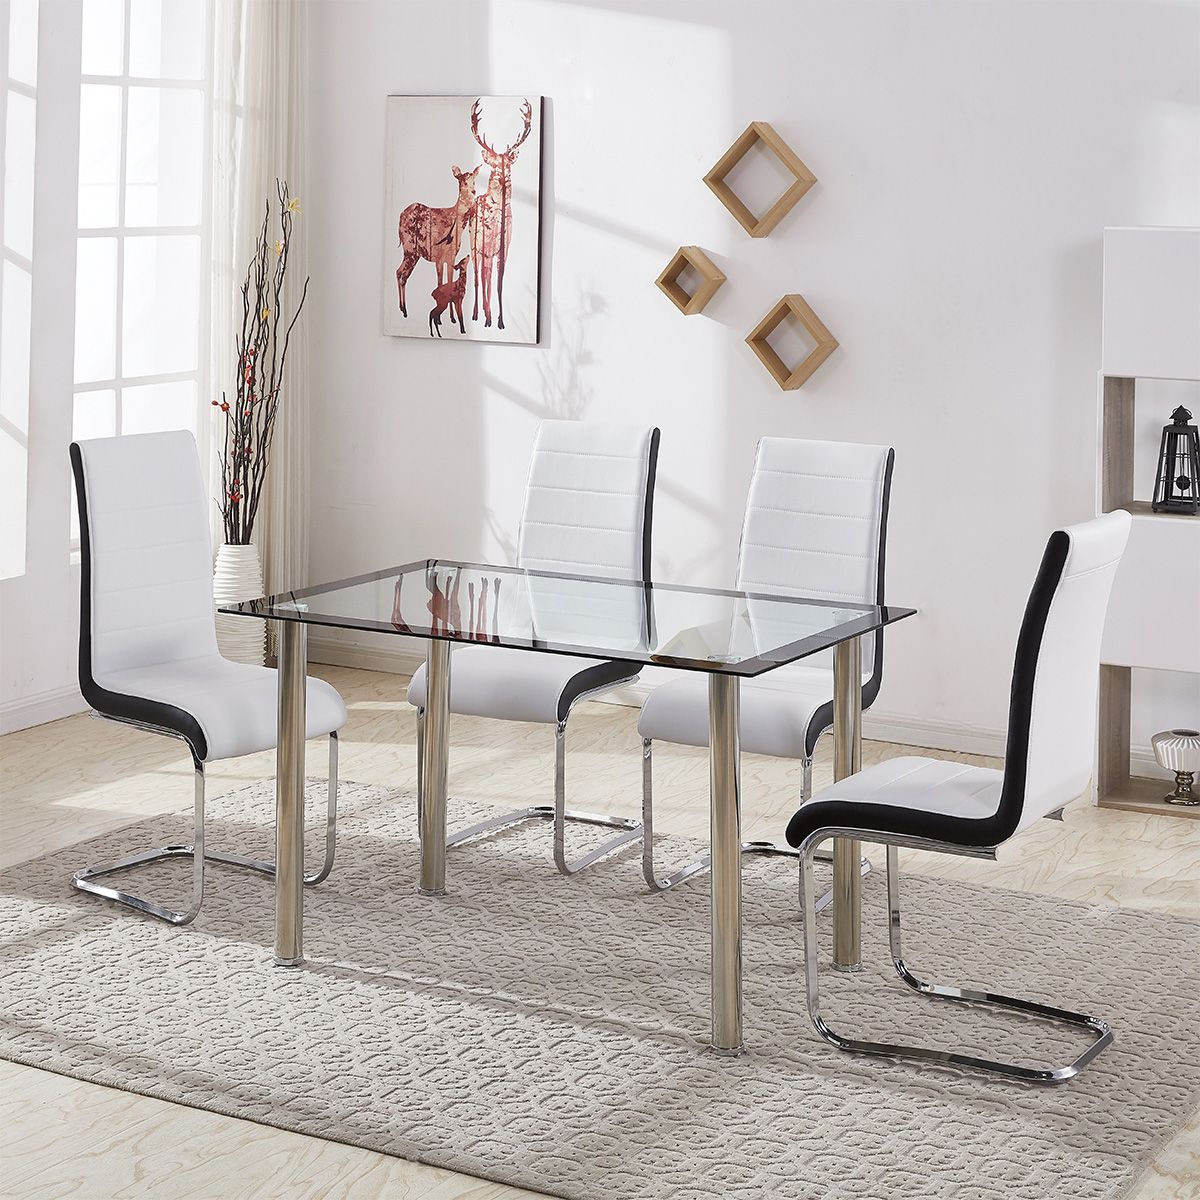 Details About Gizza 2 4 Dining Table Chairs Chrome Leg Kitchen